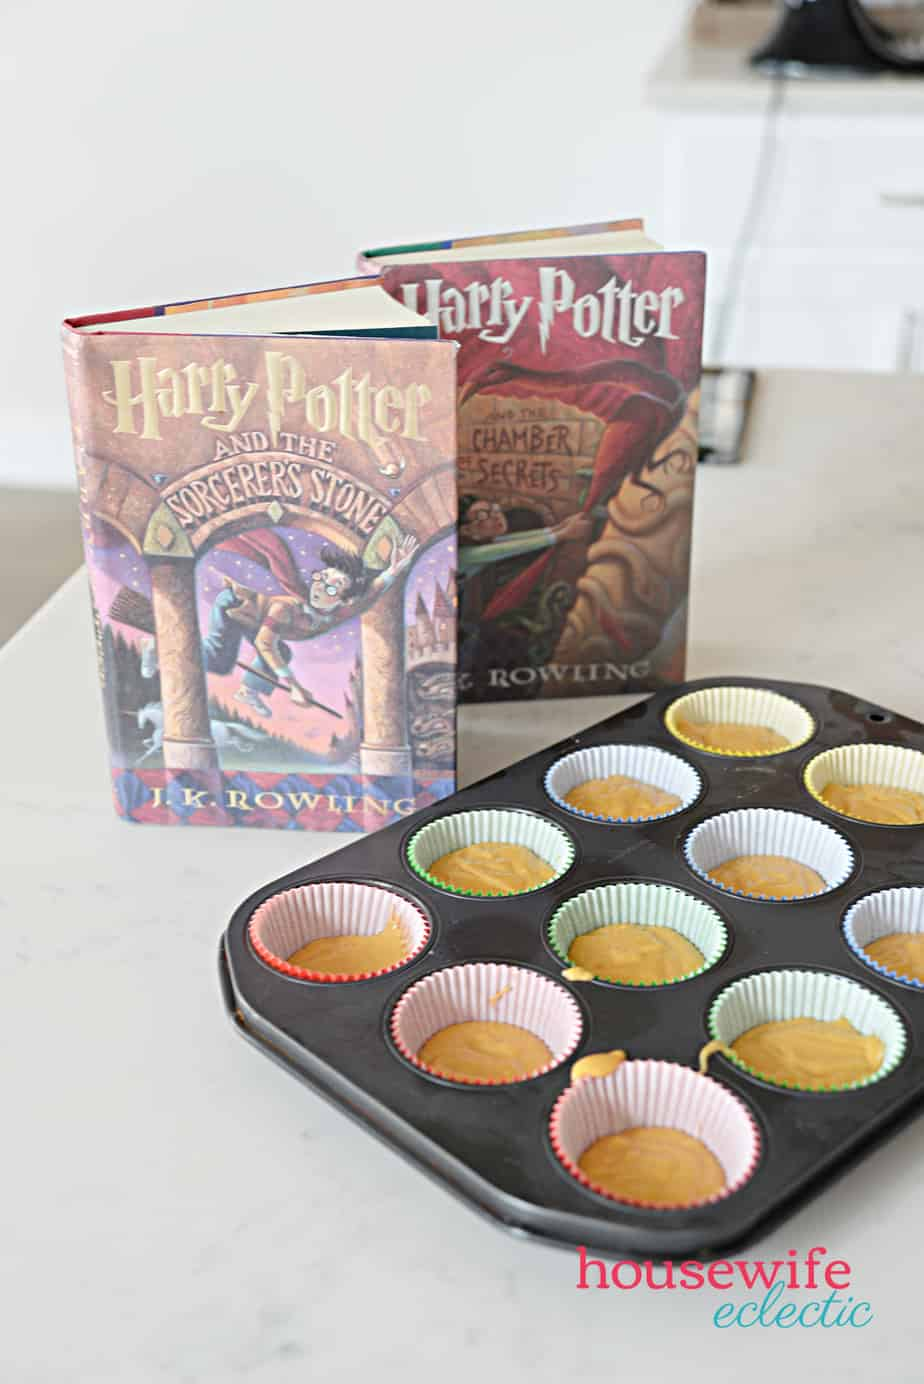 Harry Potter Butterbeer Cupcakes batter